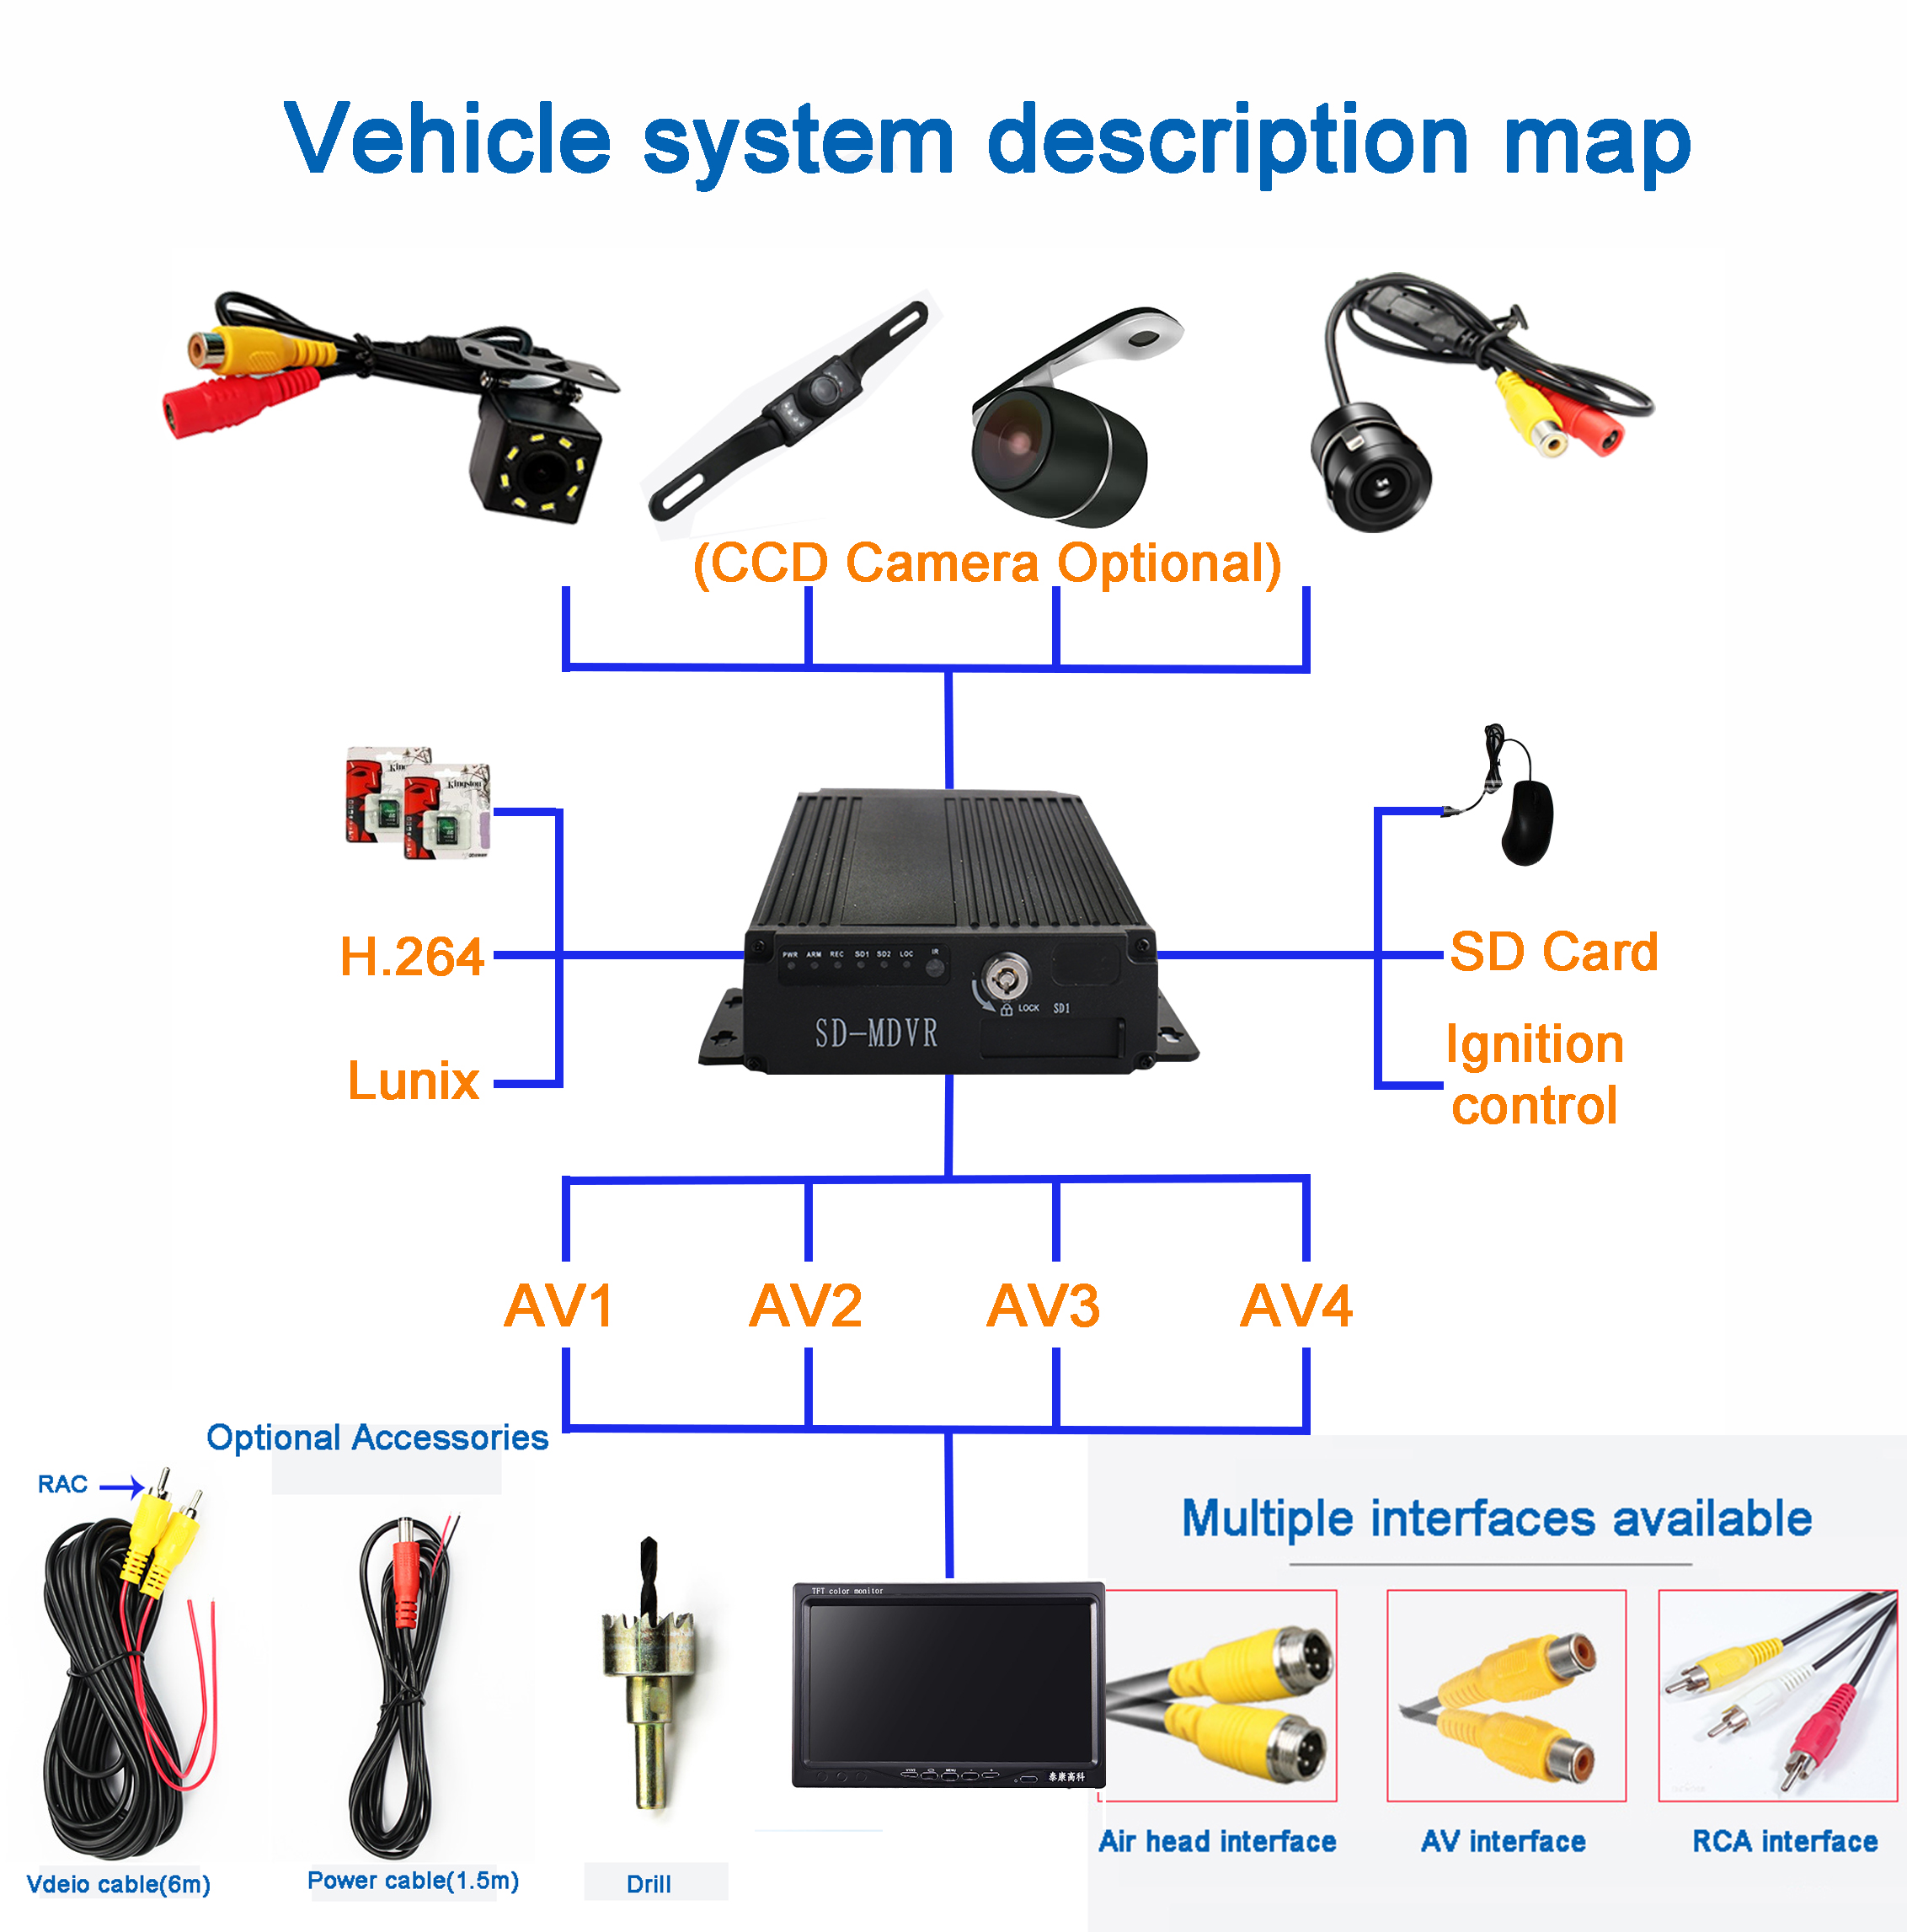 4chs MDVR vehicle system description